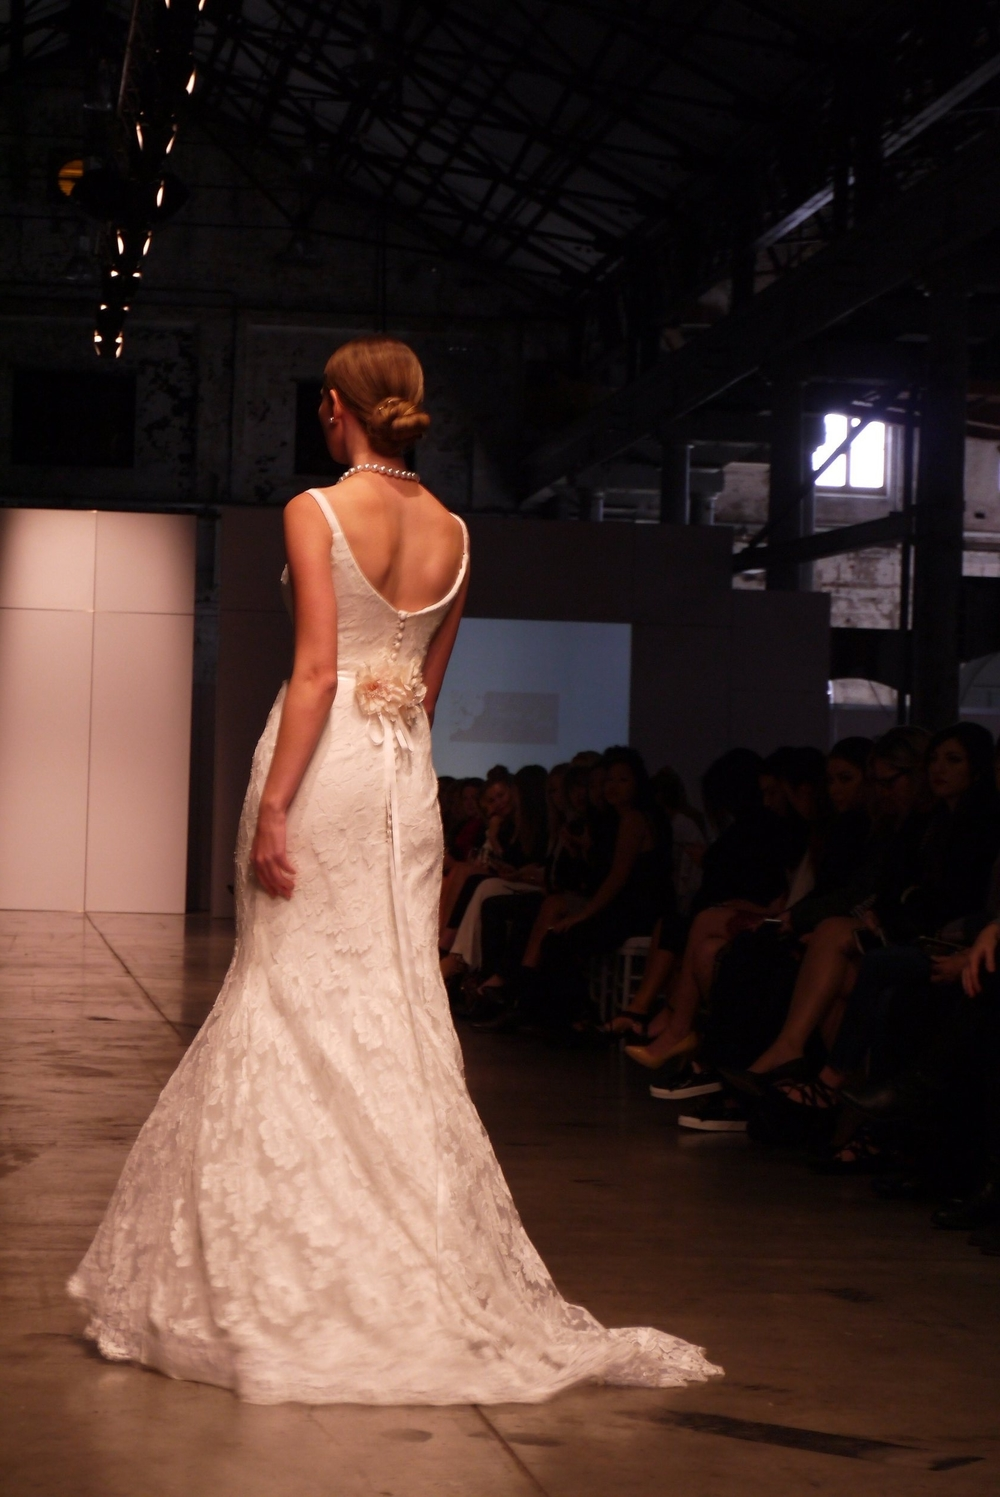 13 Tanya Anic Bridal_Summer gown design australian bridal fashion week sydney.jpg